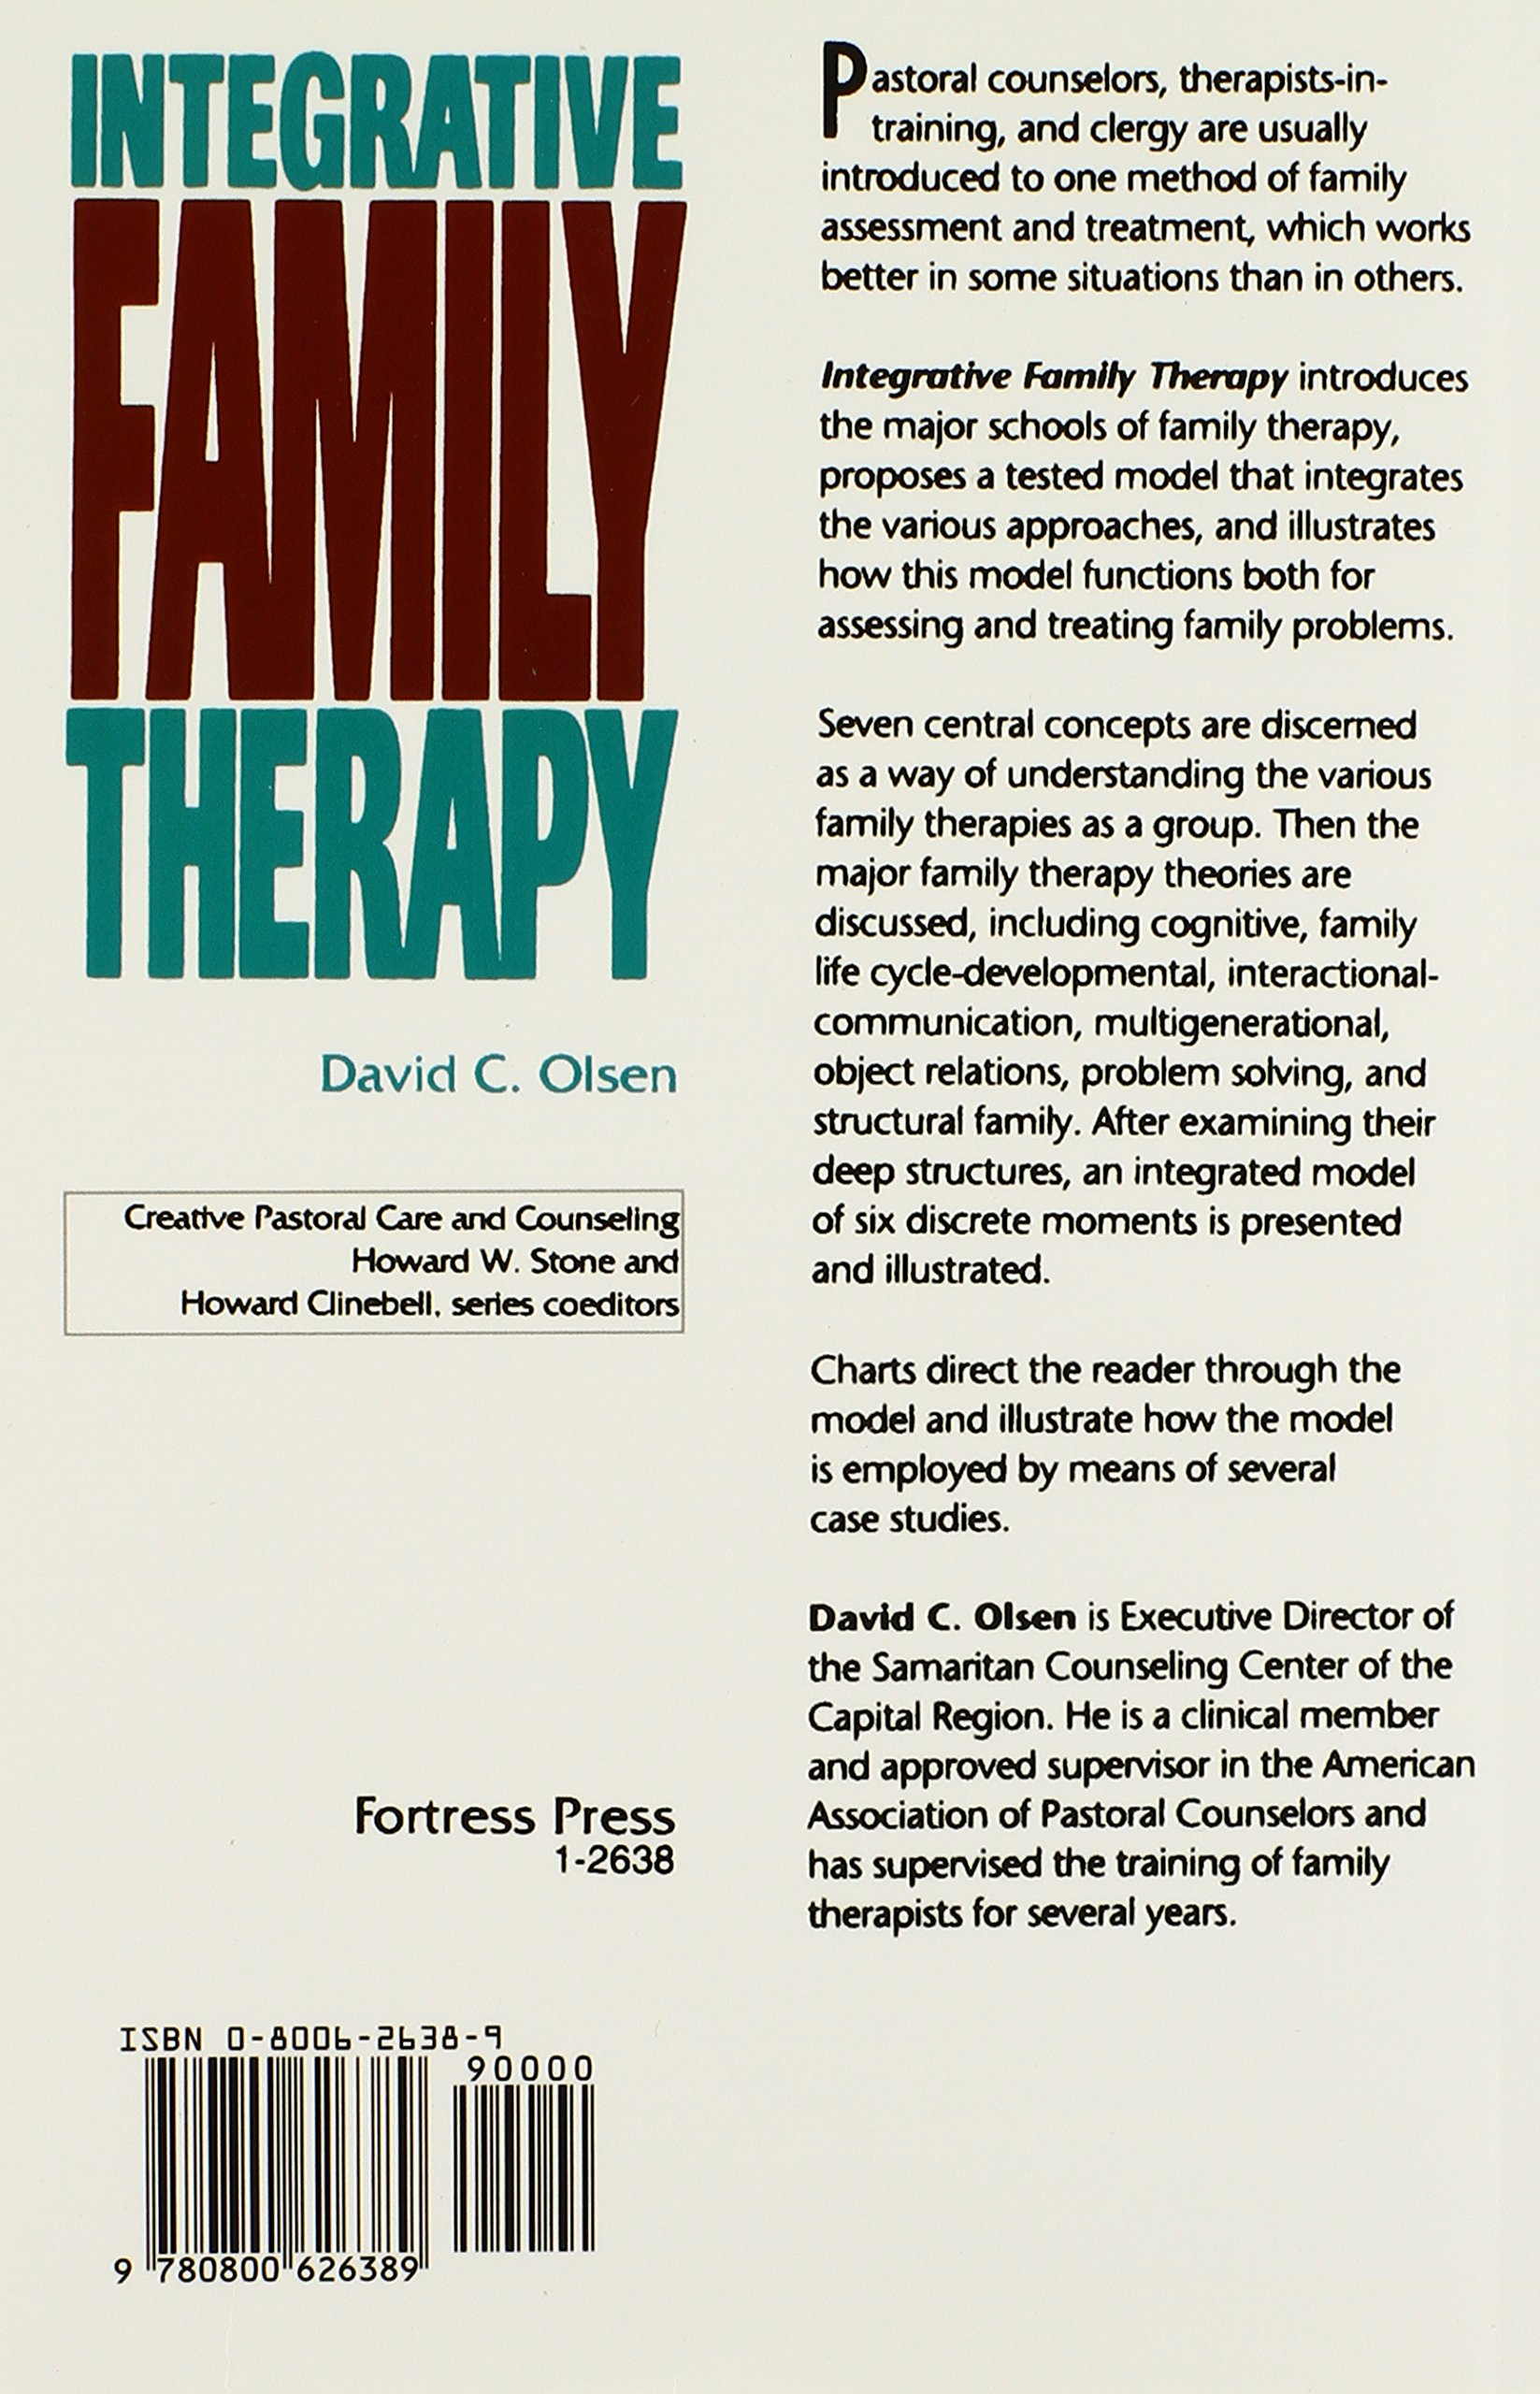 Integrative family therapy creative pastoral care and counseling and counseling creative pastoral care counseling creative pastoral care counseling series david c olsen 9780800626389 amazon books fandeluxe Image collections